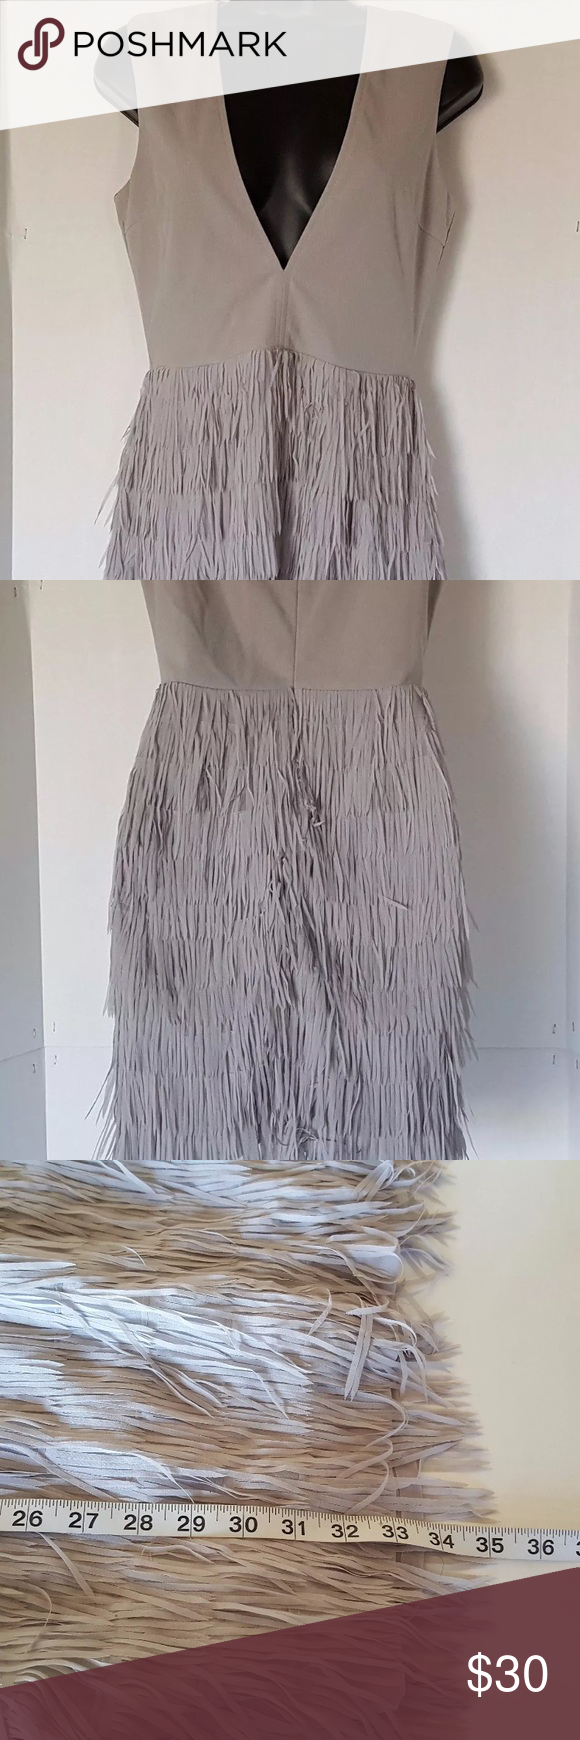 Misguided fringe dress Gray misguided fringe dress Missguided Dresses Midi